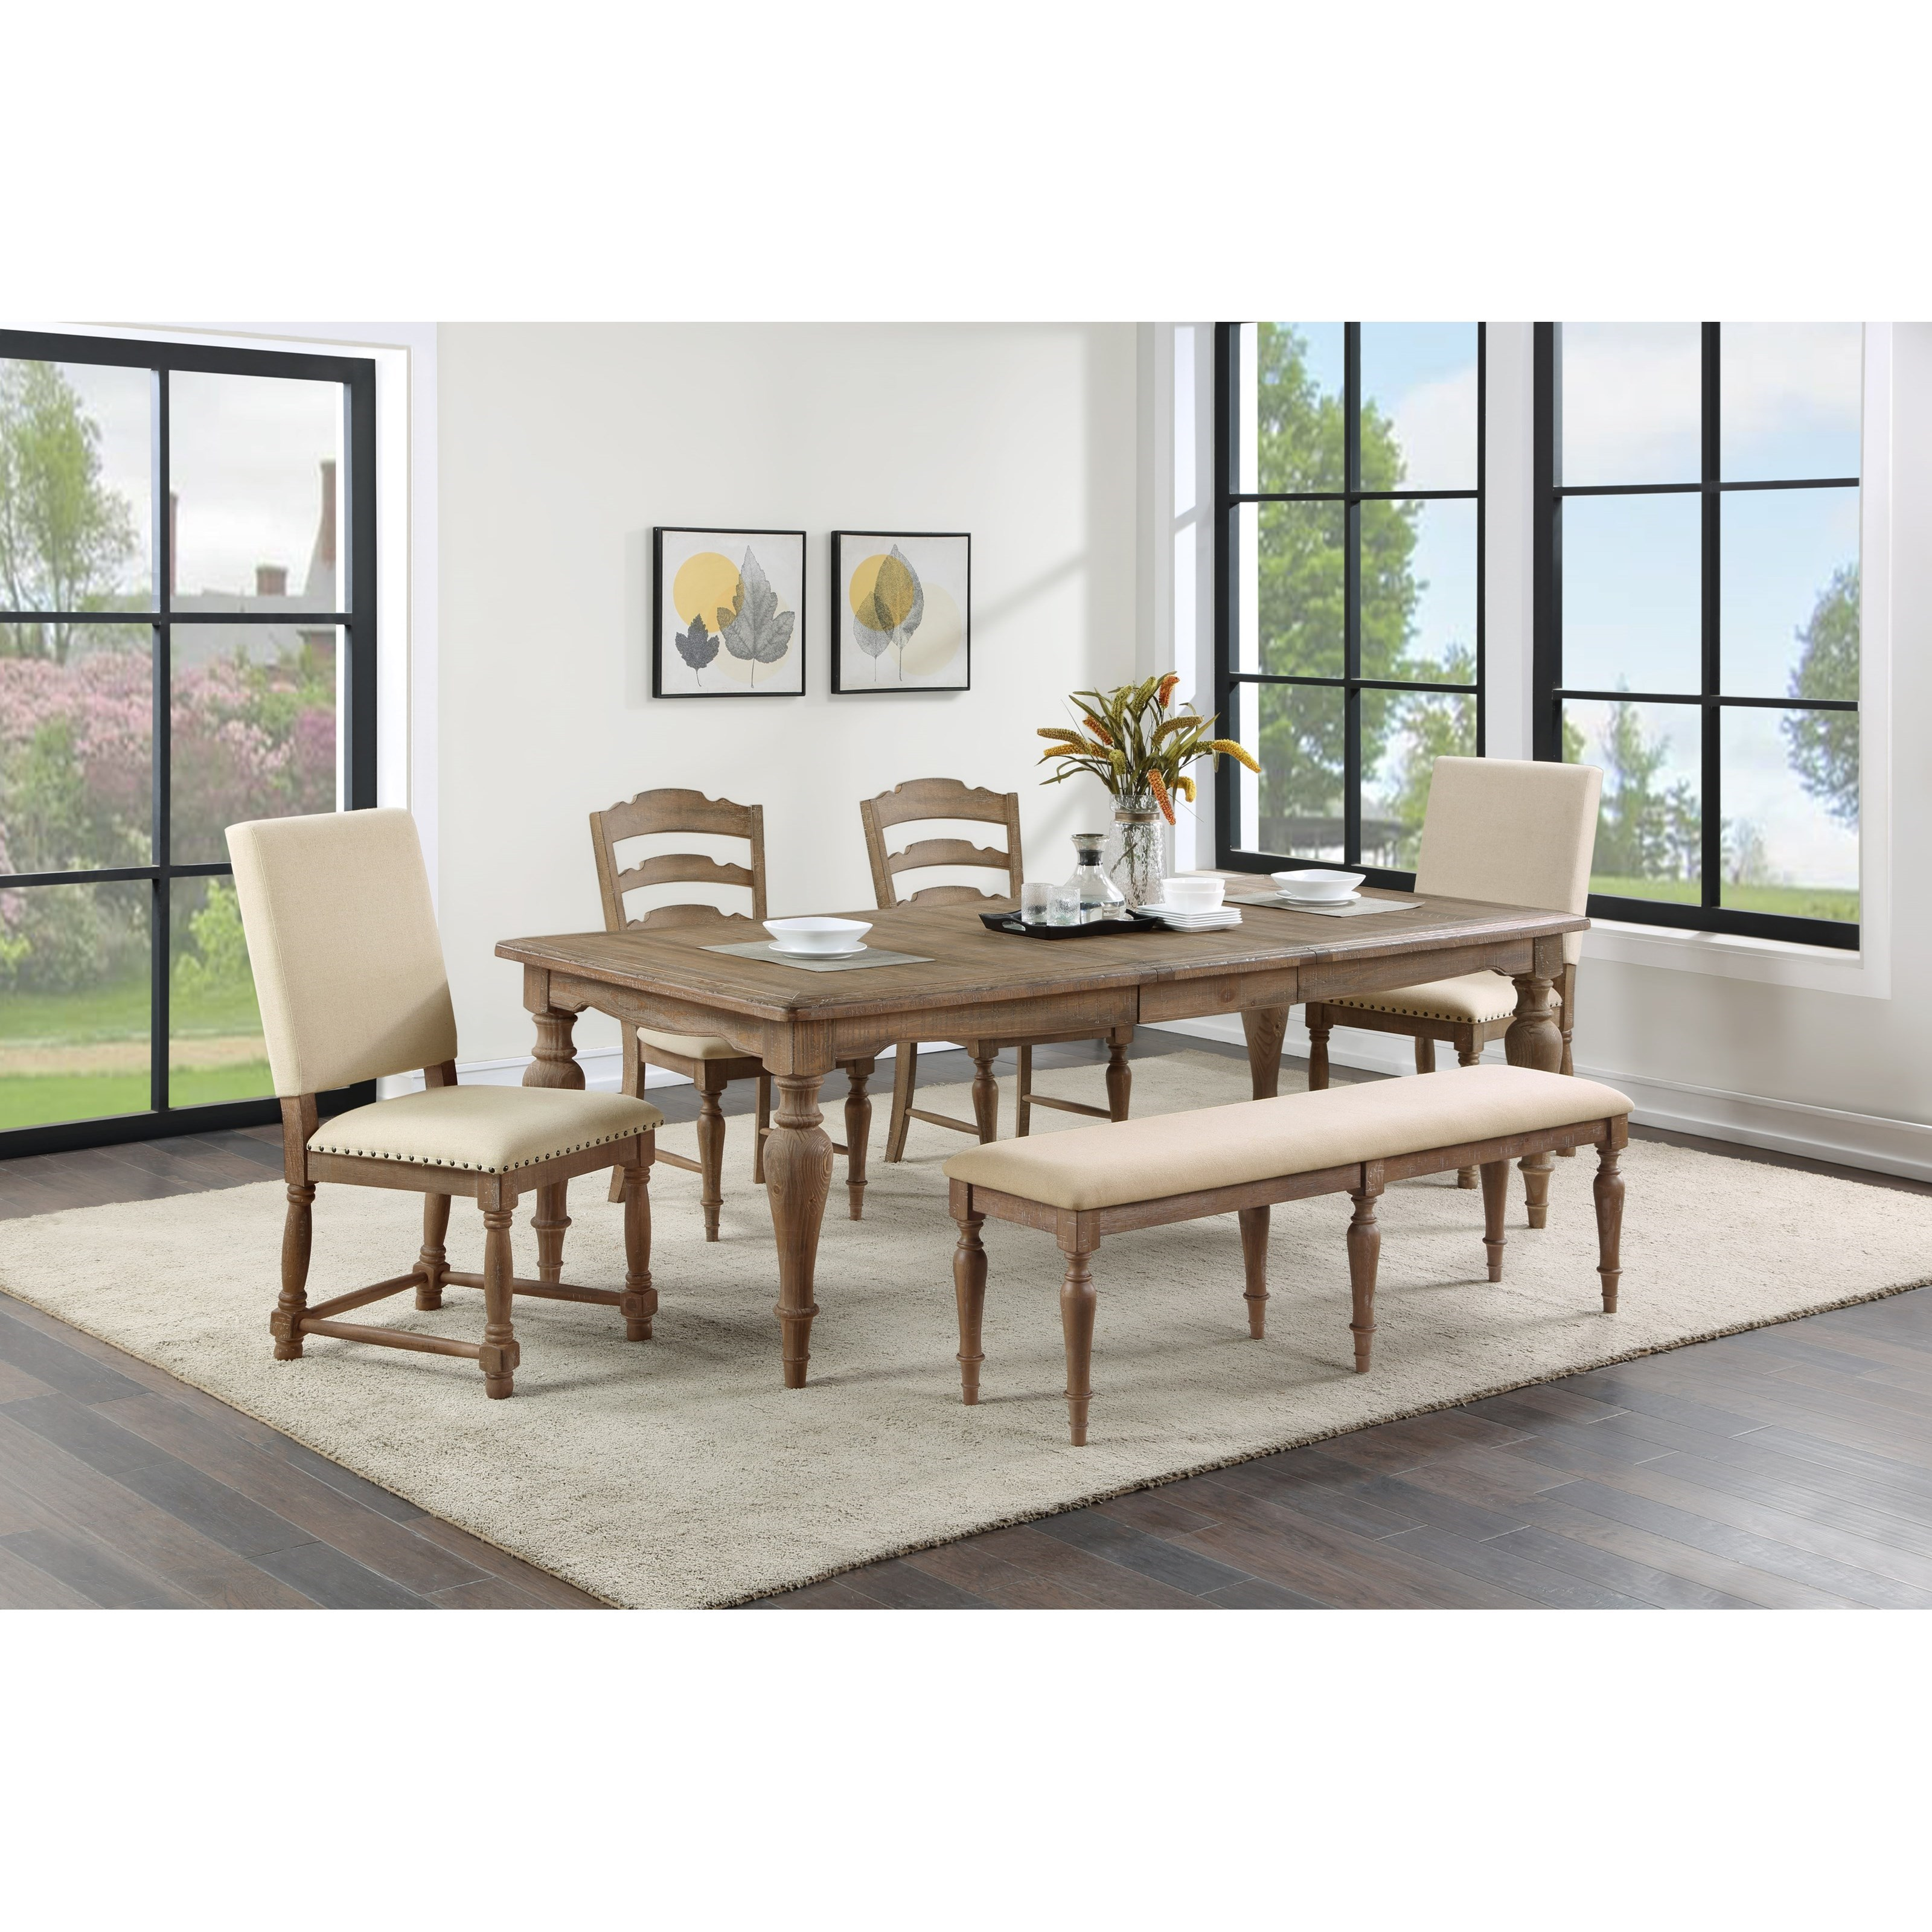 Augusta Dining Table, Chair and Bench Set by Winners Only at Simply Home by Lindy's